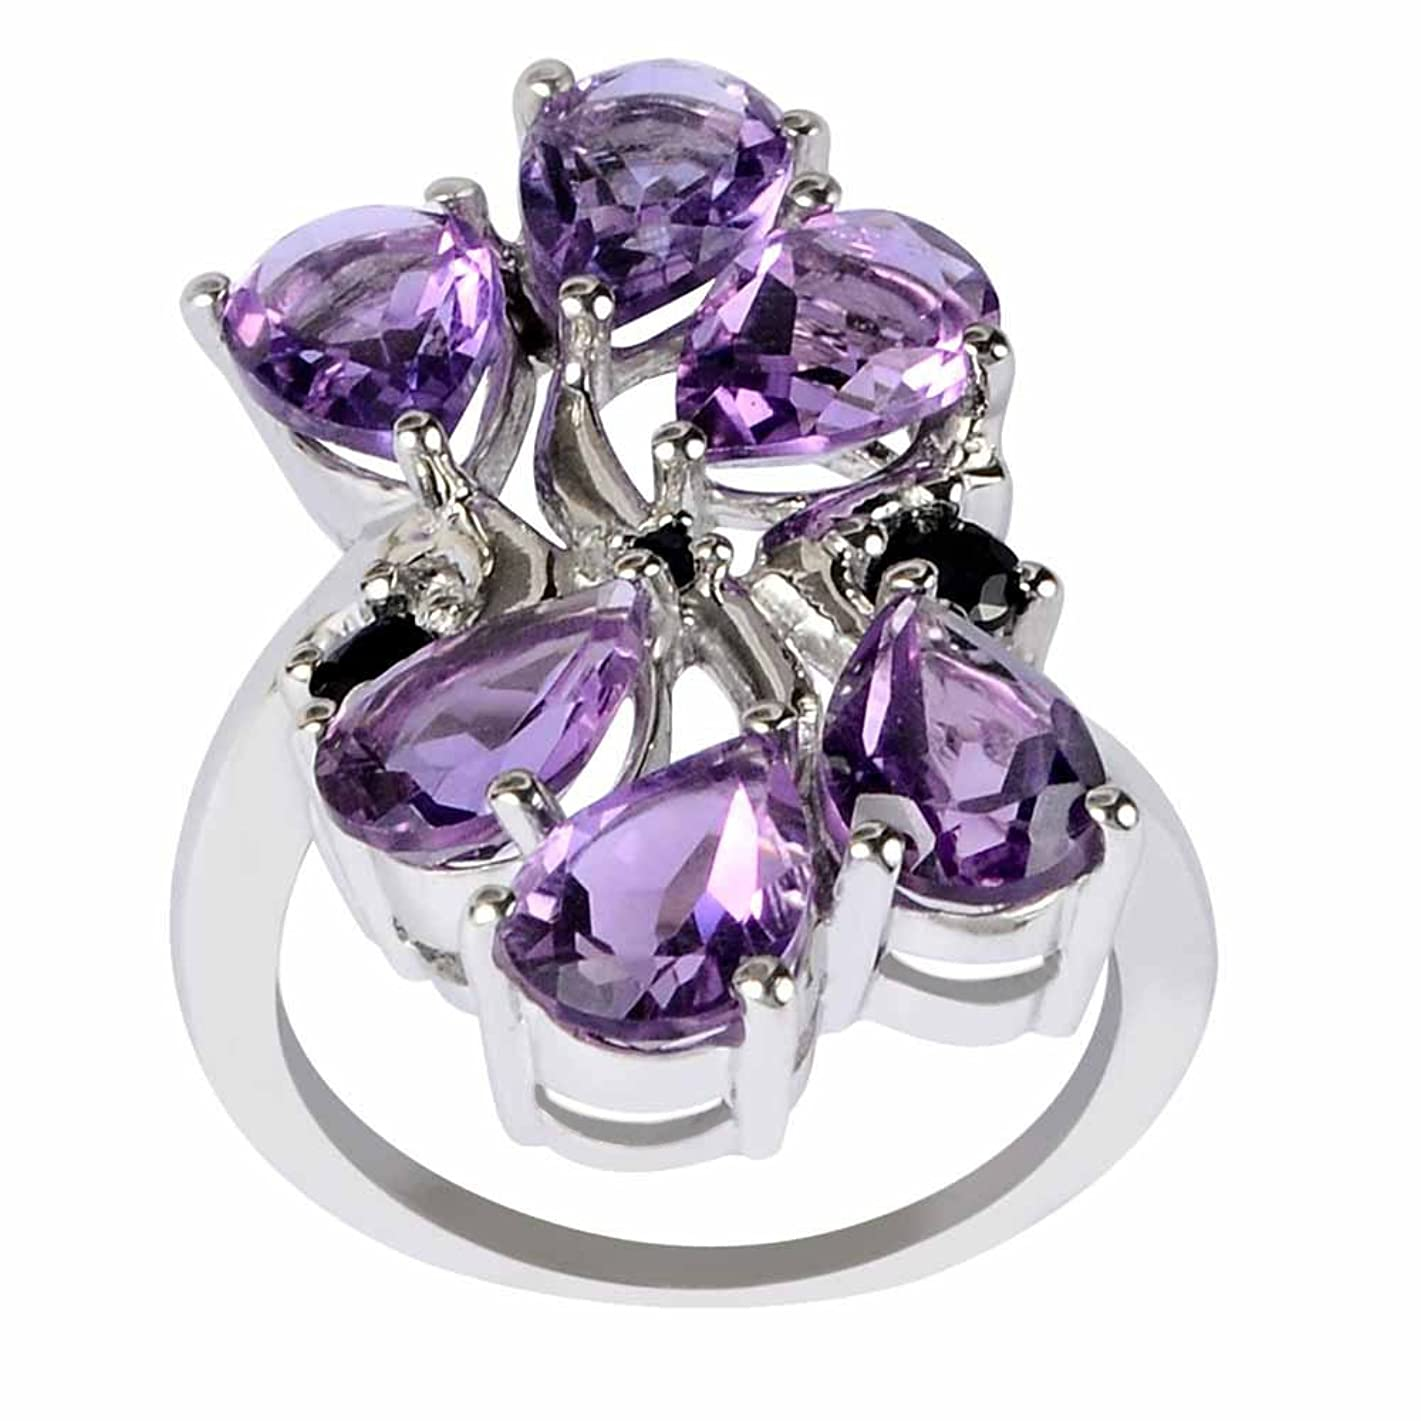 7.57 Ctw Amethyst & Sapphire Stone Rings For Women By Orchid Jewelry: Anniversary & Promise Rings For Women & Her, Multi Birthstone Wedding Jewelry, Fashion Rings Size 8